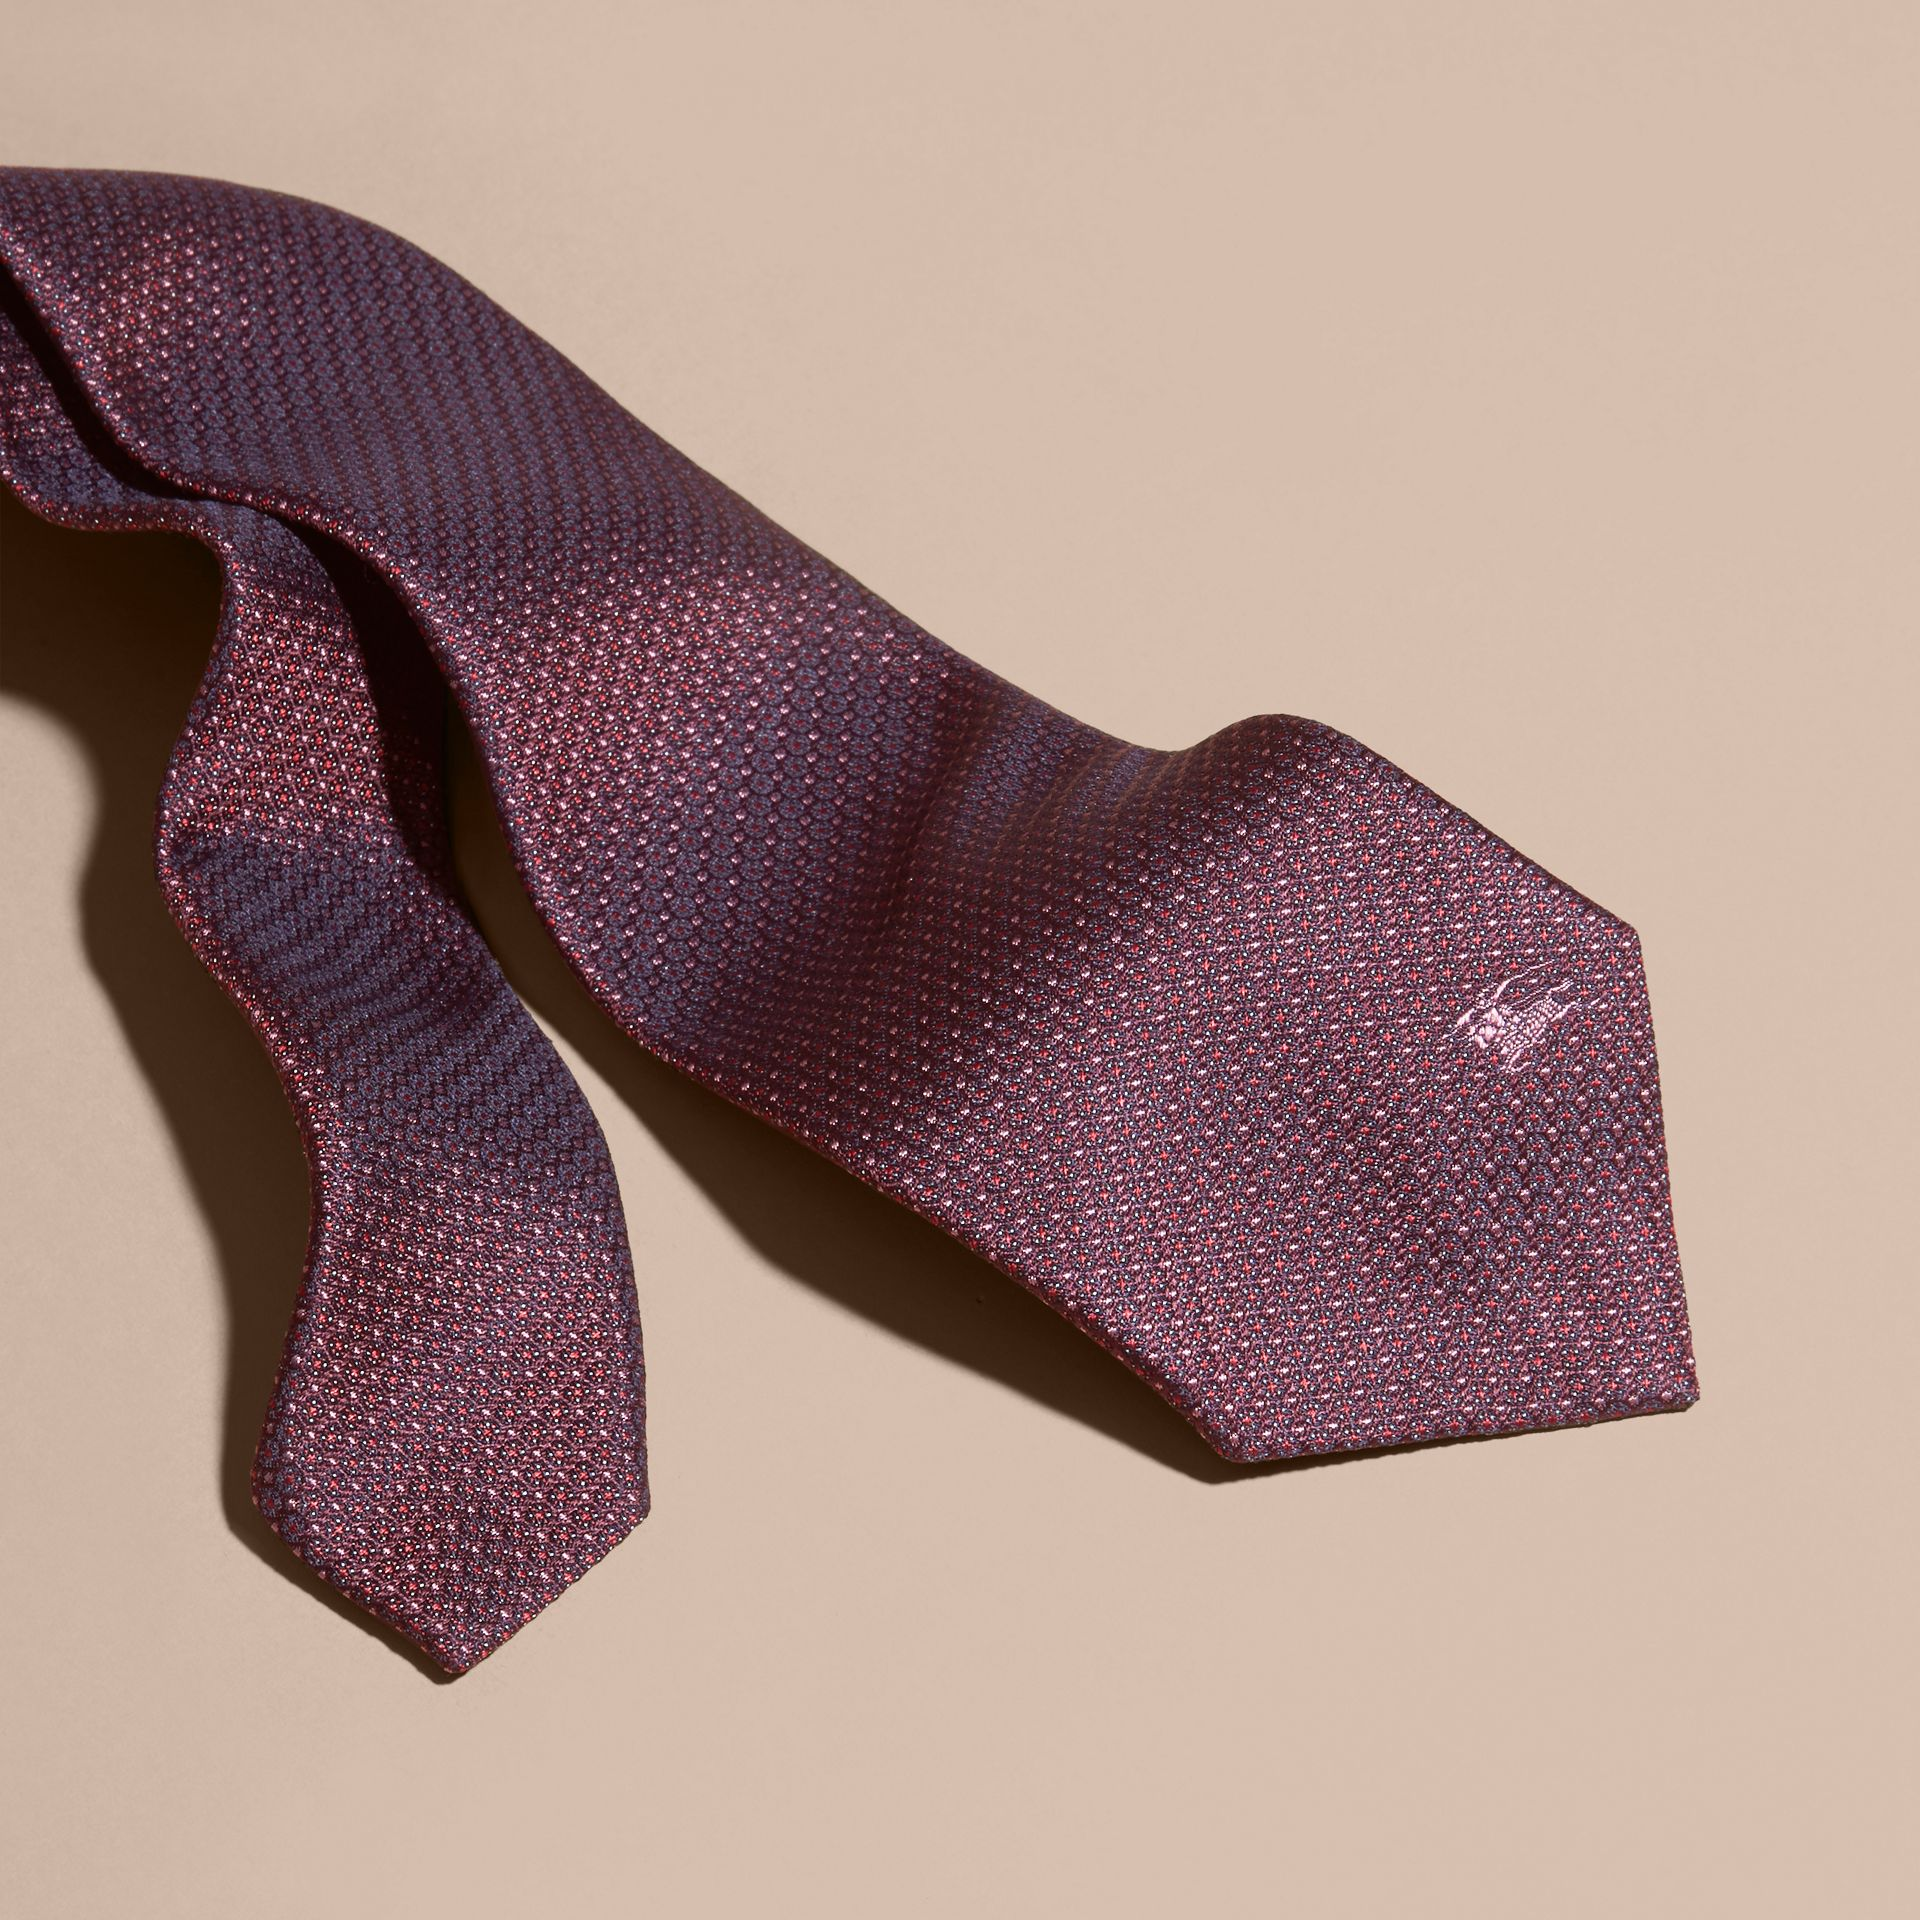 Modern Cut Patterned Silk Tie in Deep Claret - Men | Burberry Singapore - gallery image 3